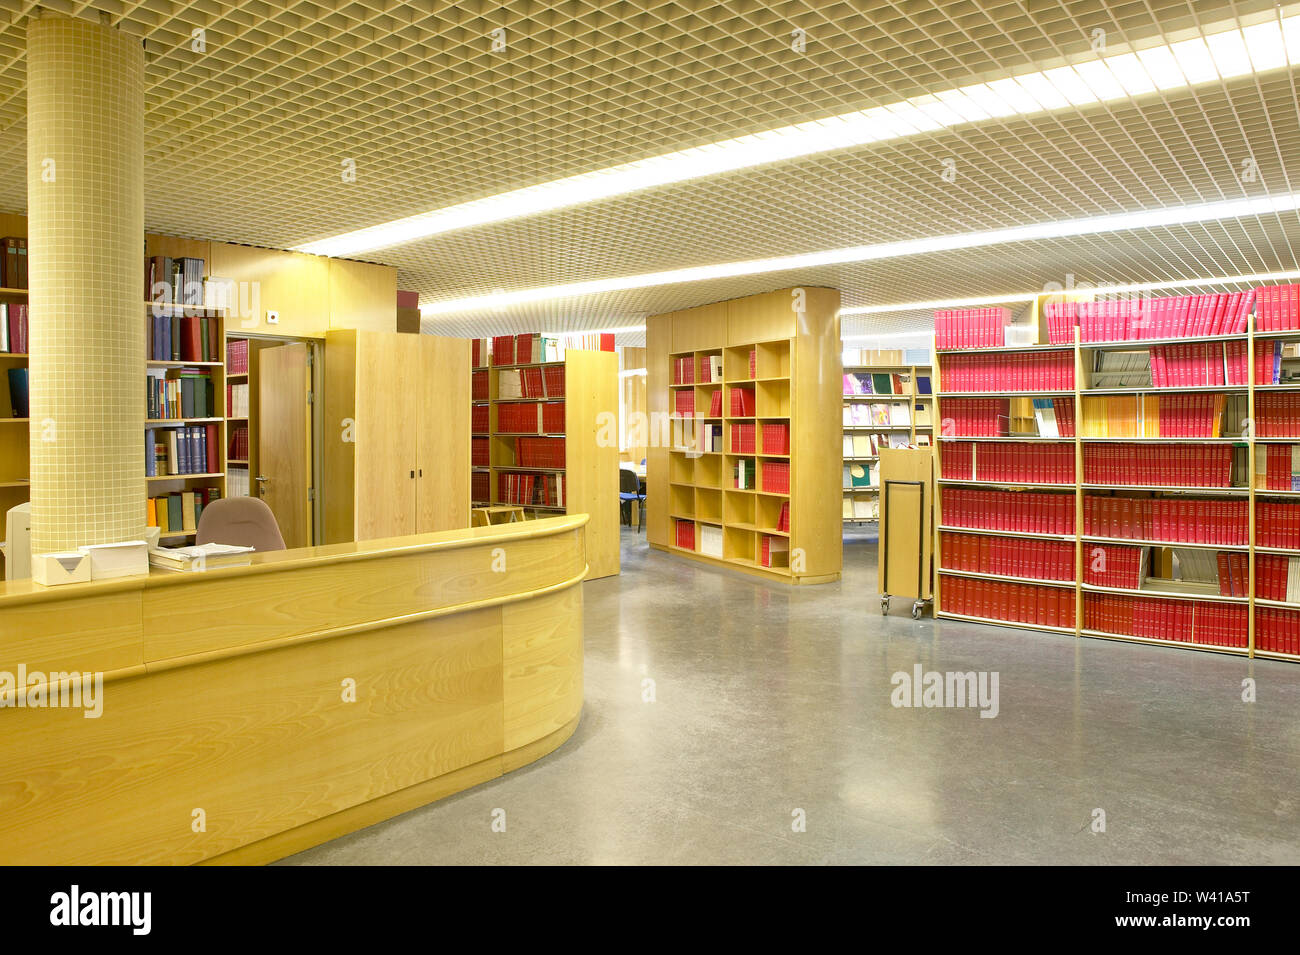 Public Library Interior With Bookshelves And Information